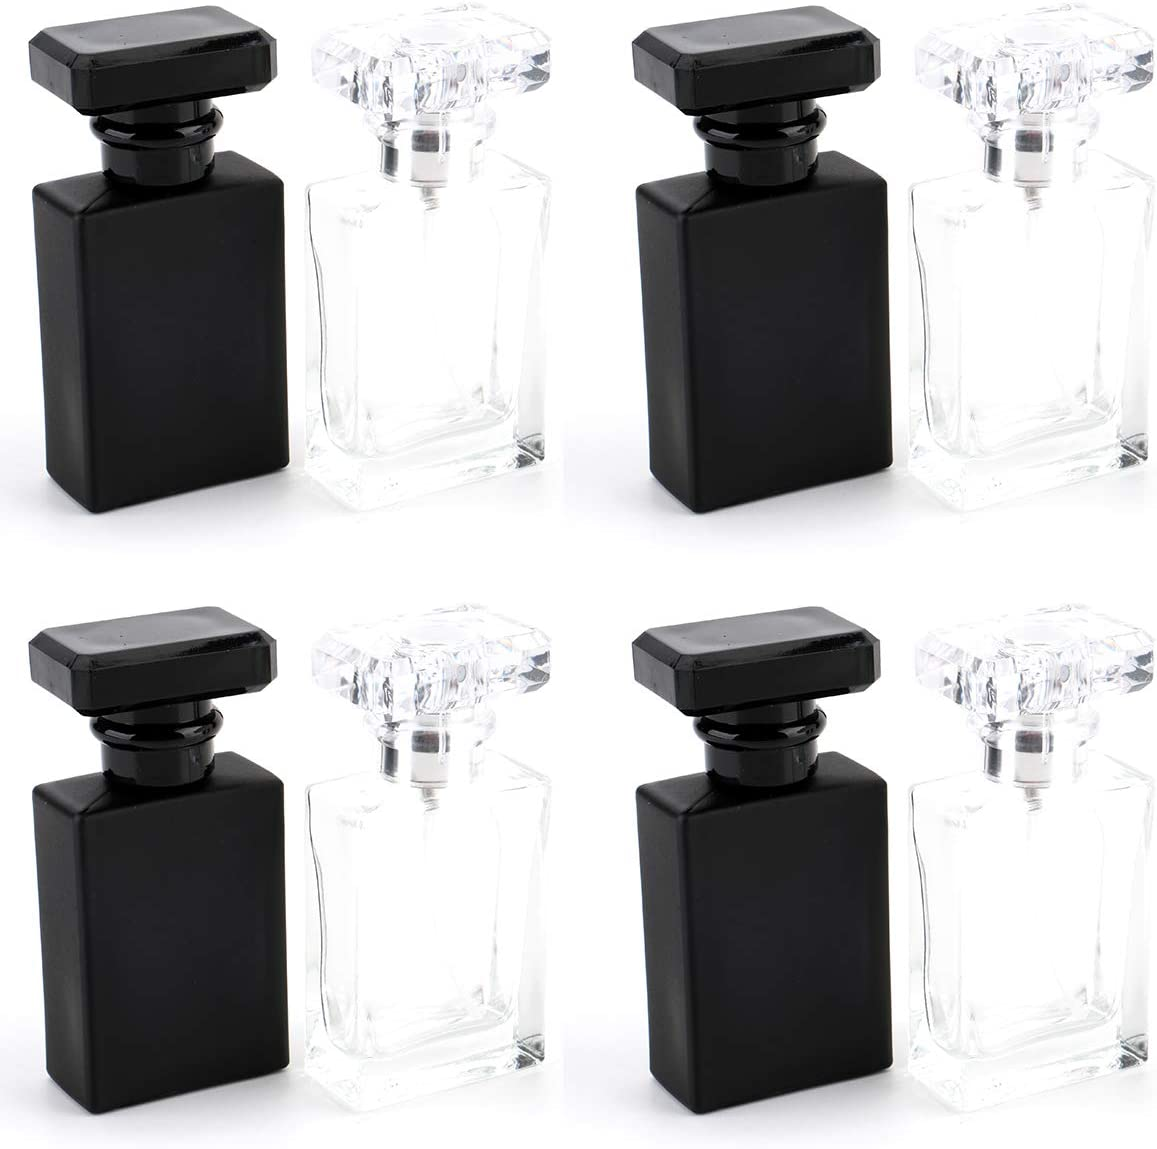 Foraineam 8 Pack 30ml / 1 oz. Refillable Perfume Bottle, Portable Square Empty Glass Perfume Atomizer Bottle with Spray Applicator, Transparent and Black Assorted